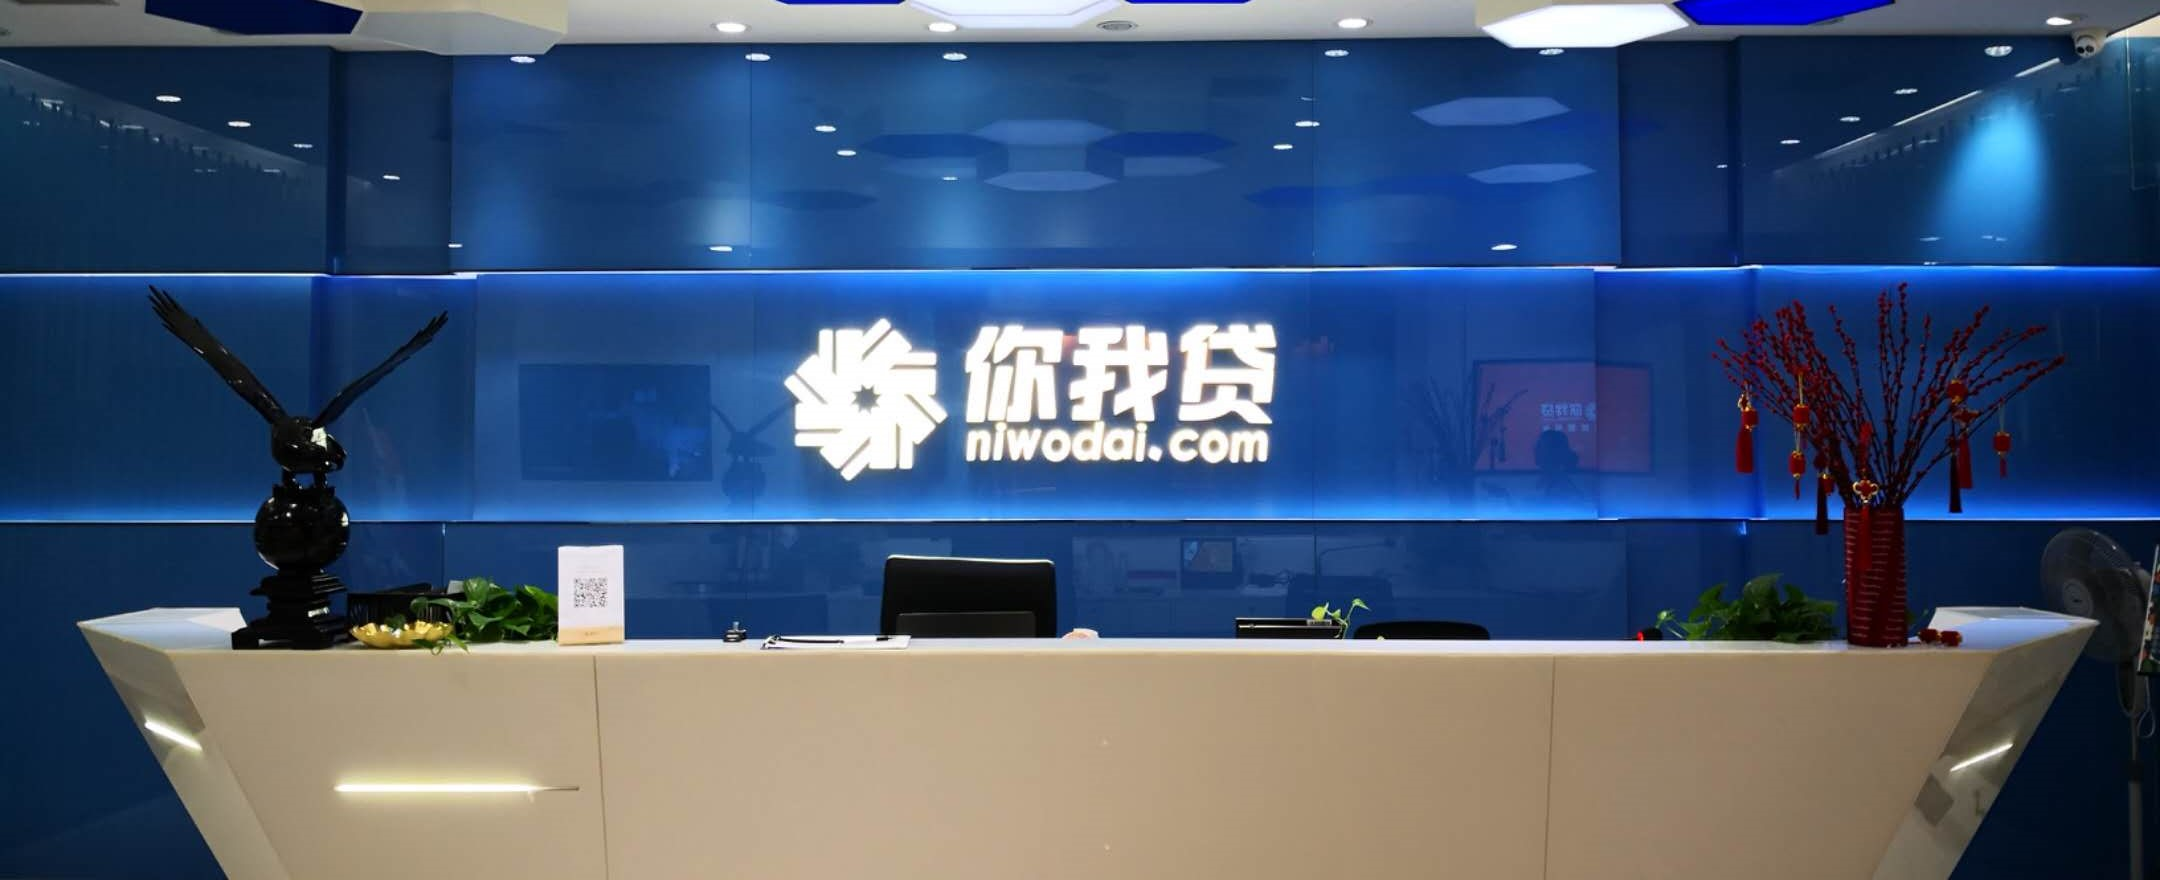 Jiayin, a Top Player in P2P Lending Business, Files for $57.5 Million IPO on Nasdaq